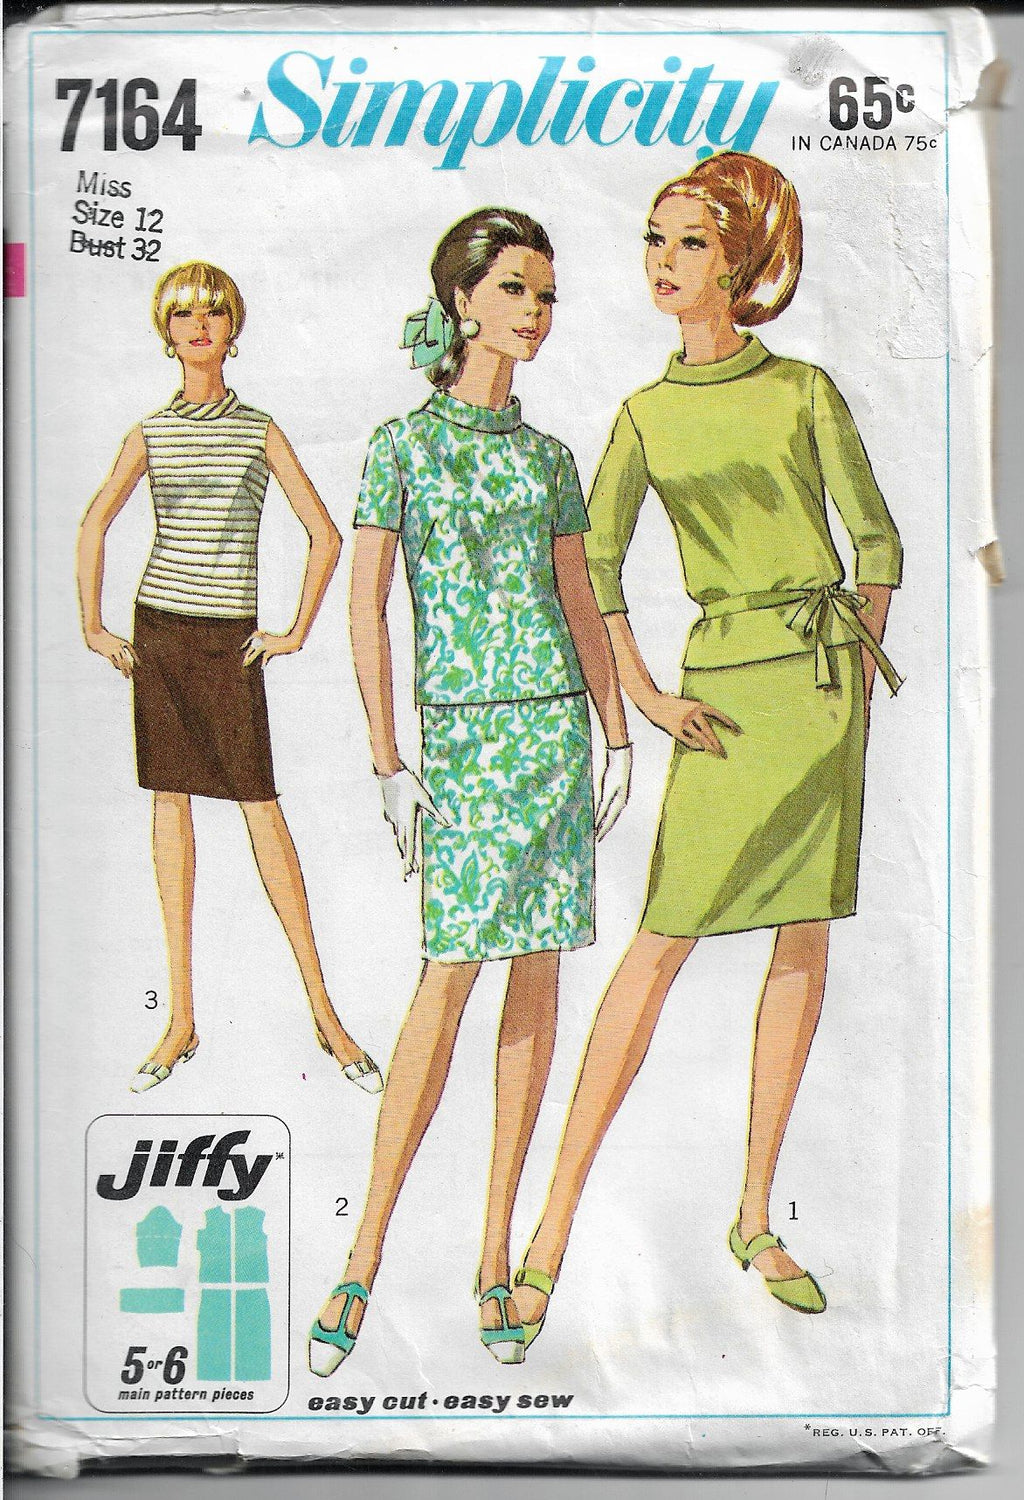 Simplicity 7164 Ladies Two Piece Dress Jiffy Vintage Sewing Pattern 1960's - VintageStitching - Vintage Sewing Patterns